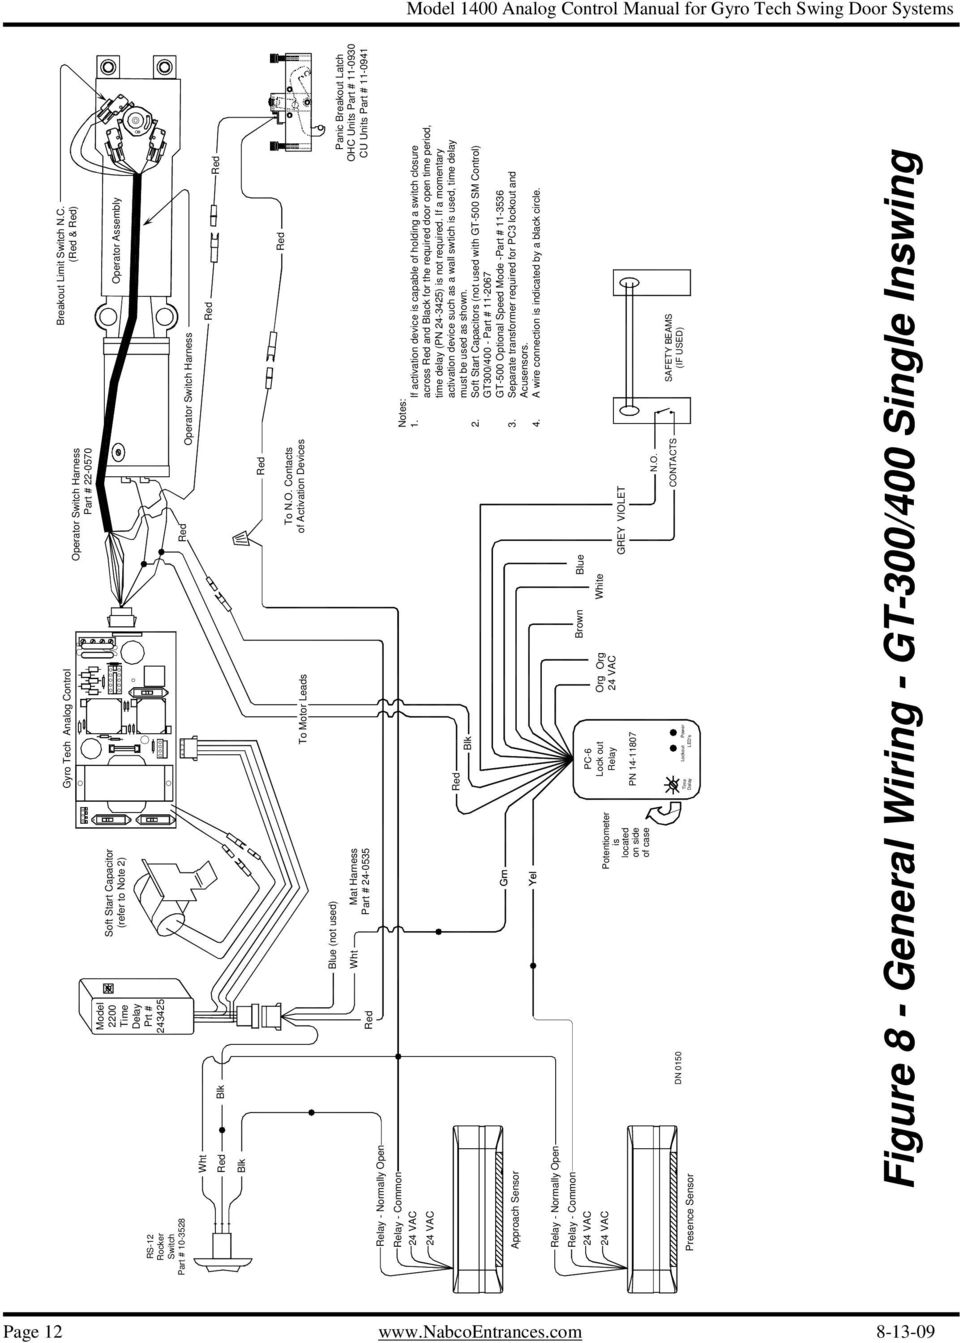 Analog Control Wiring Adjustment Manual For Gyro Tech Swing Door Harbor Freight Diagram Reversing Switch If Activation Device Is Capable Of Holding A Closure Across And Black The Required